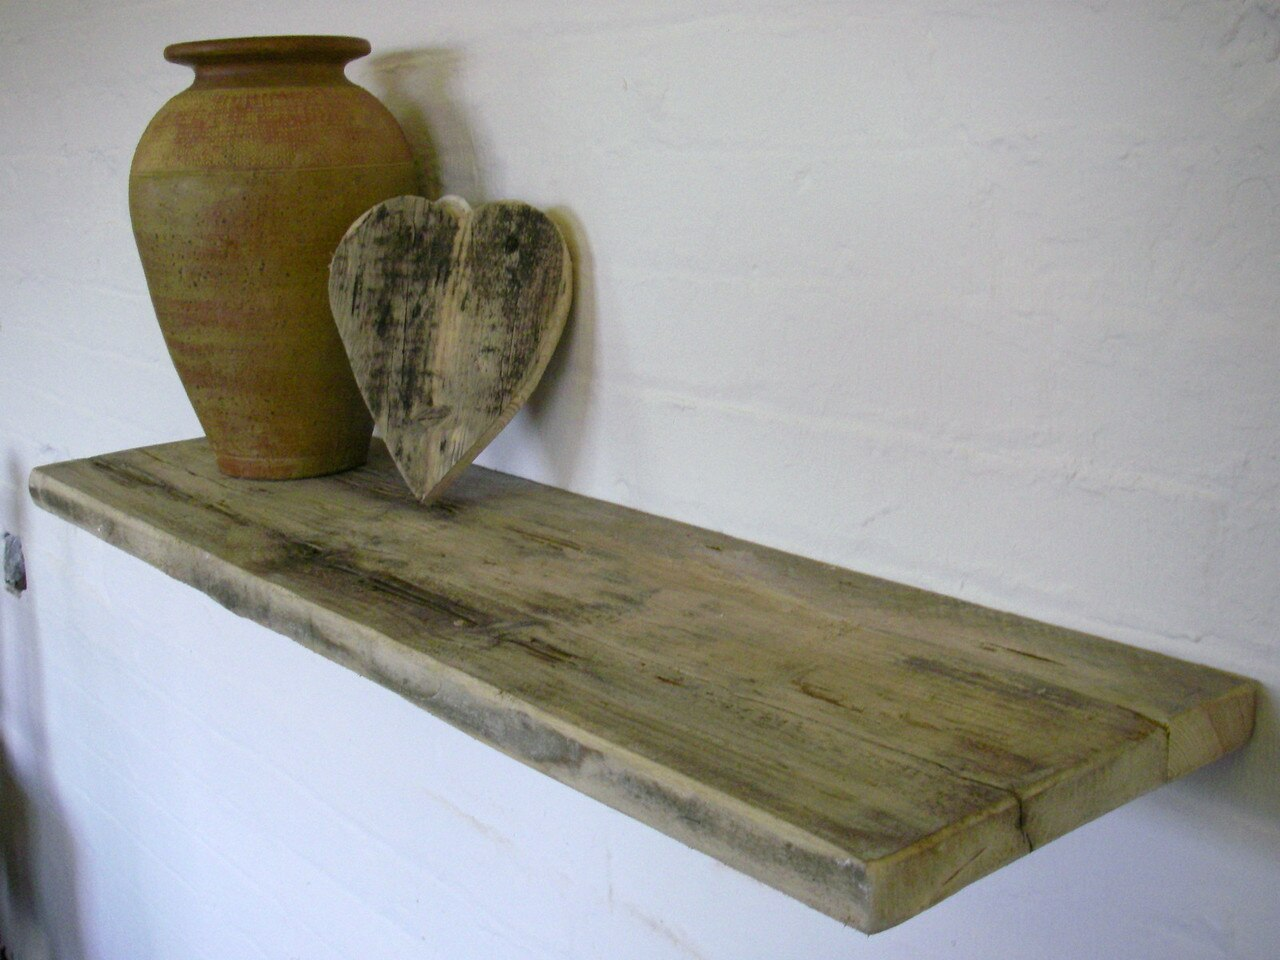 driftwood floating shelves dream house design ideas natural reclaimed rustic wood shelf canvas for wall and alcovenatural laying peel stick tile concrete floor portable steel